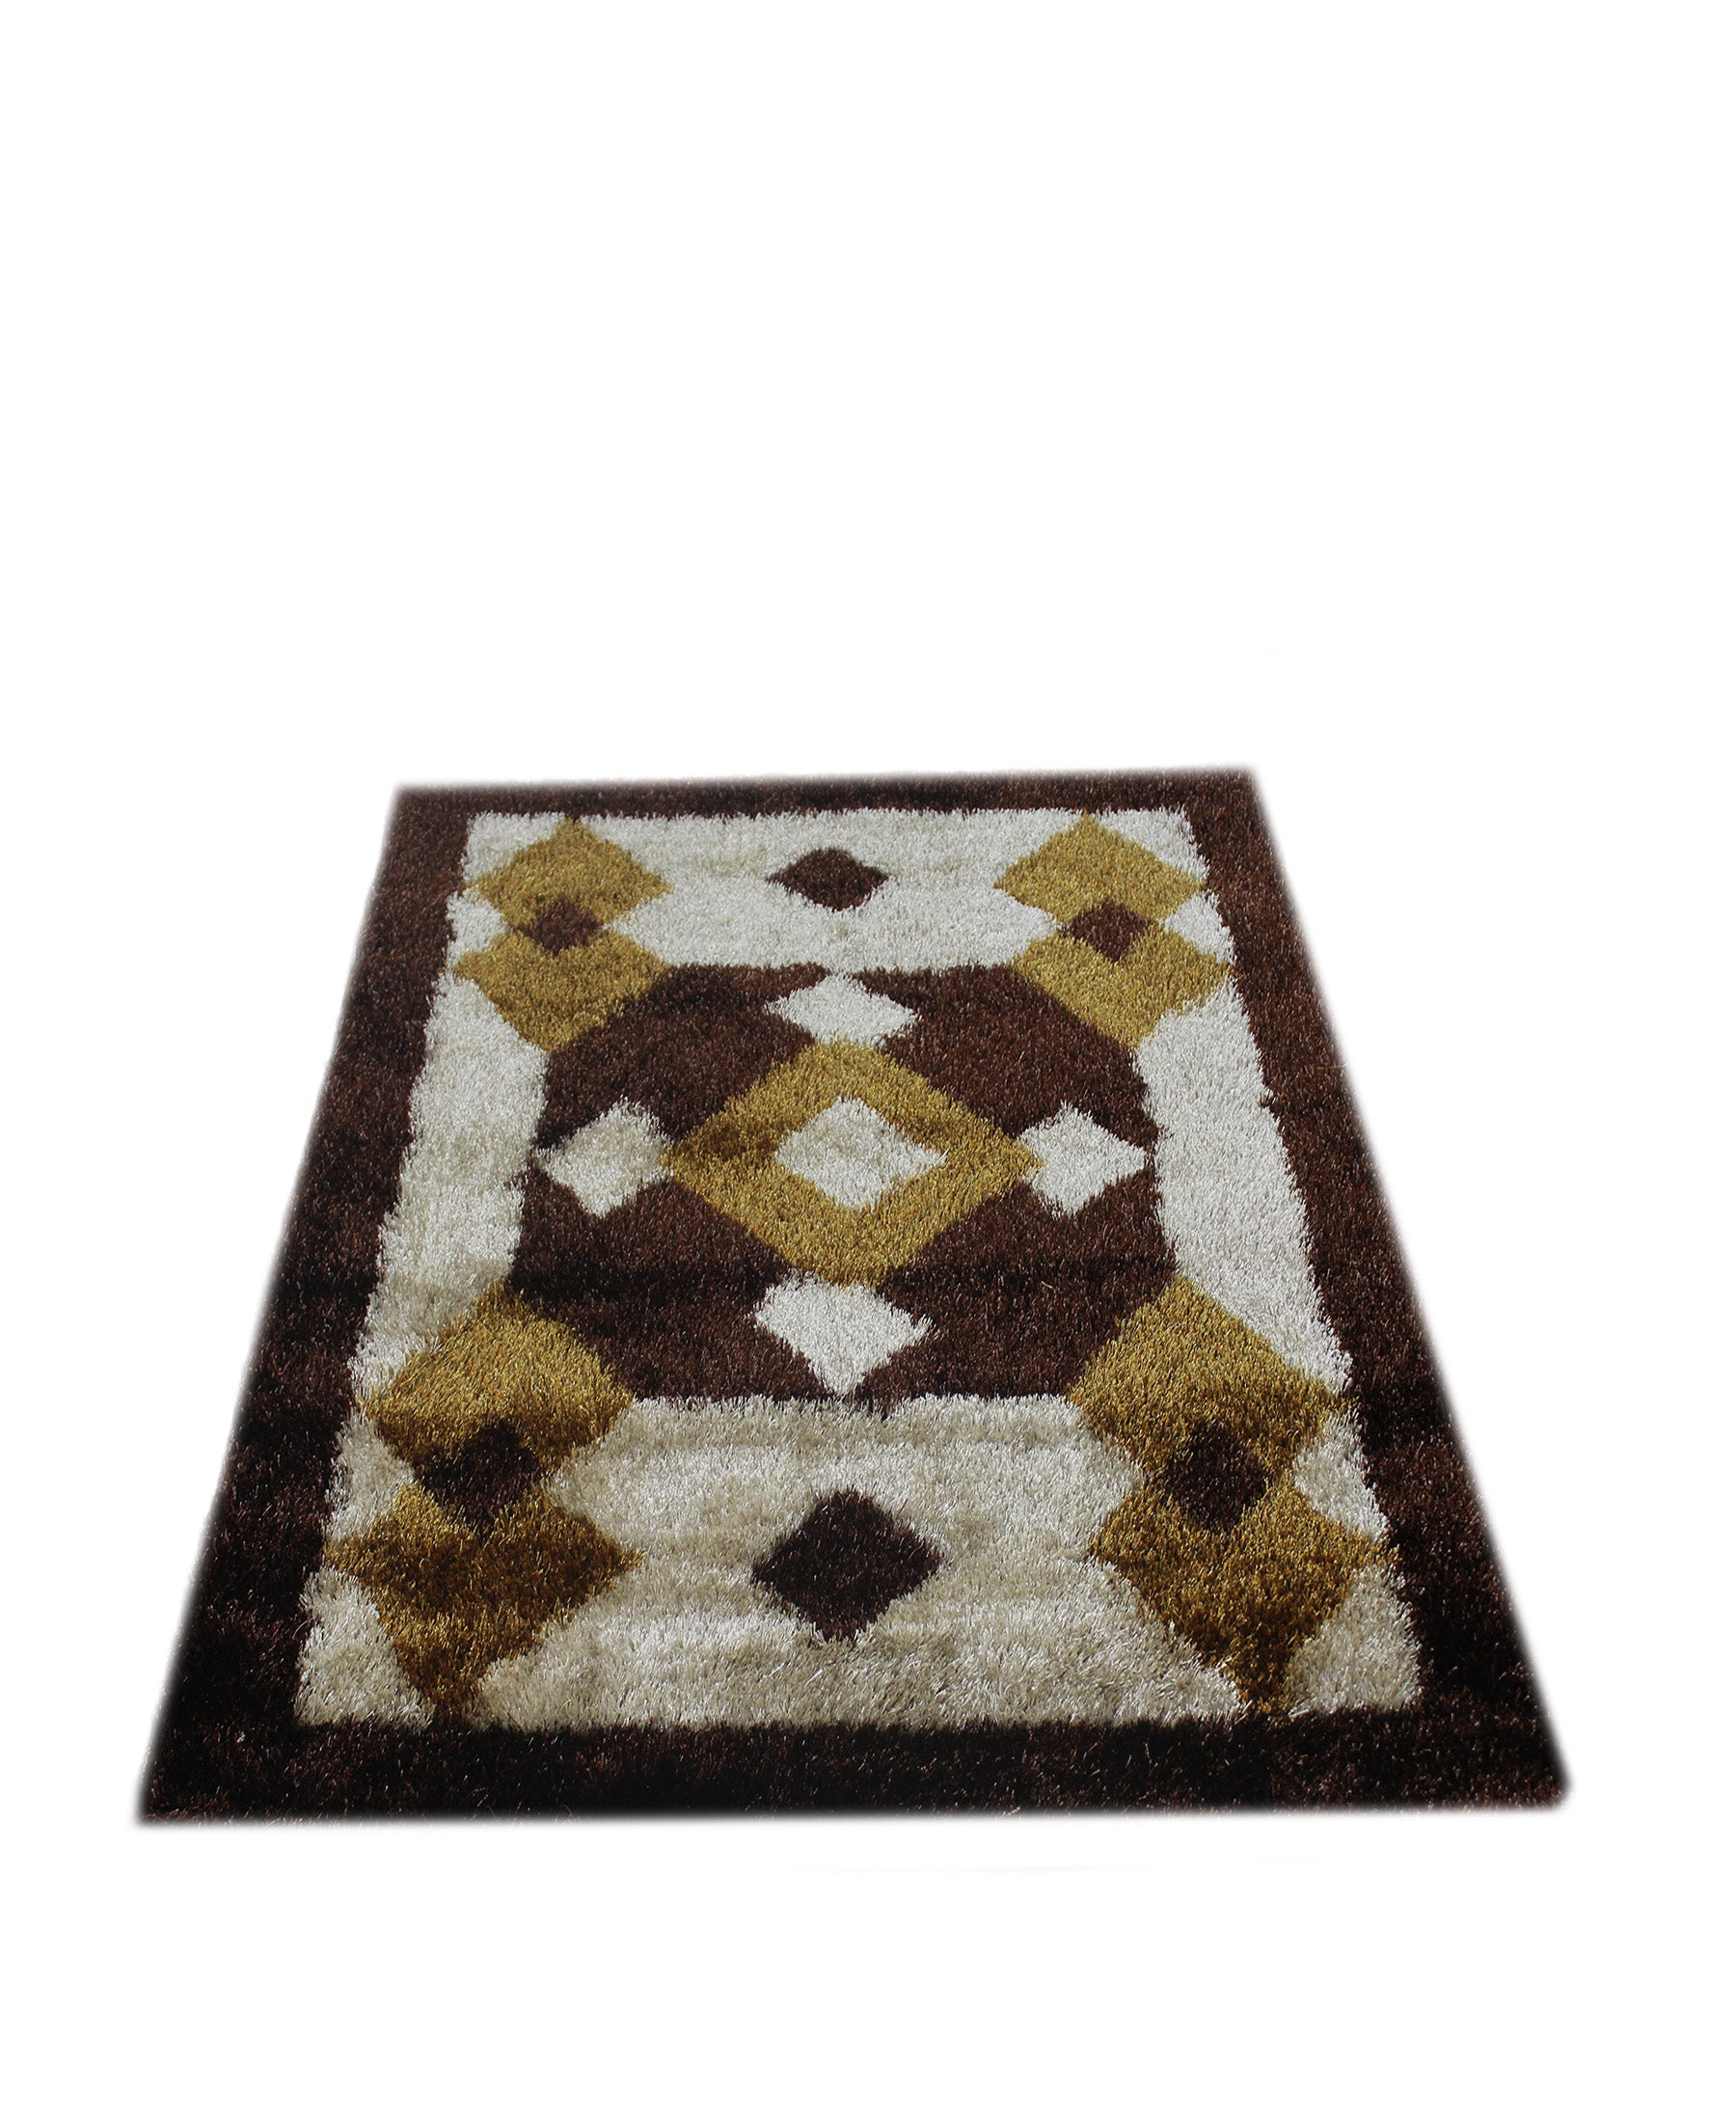 Emporium Shaggy Carpet 1200mm x 1600mm - Brown